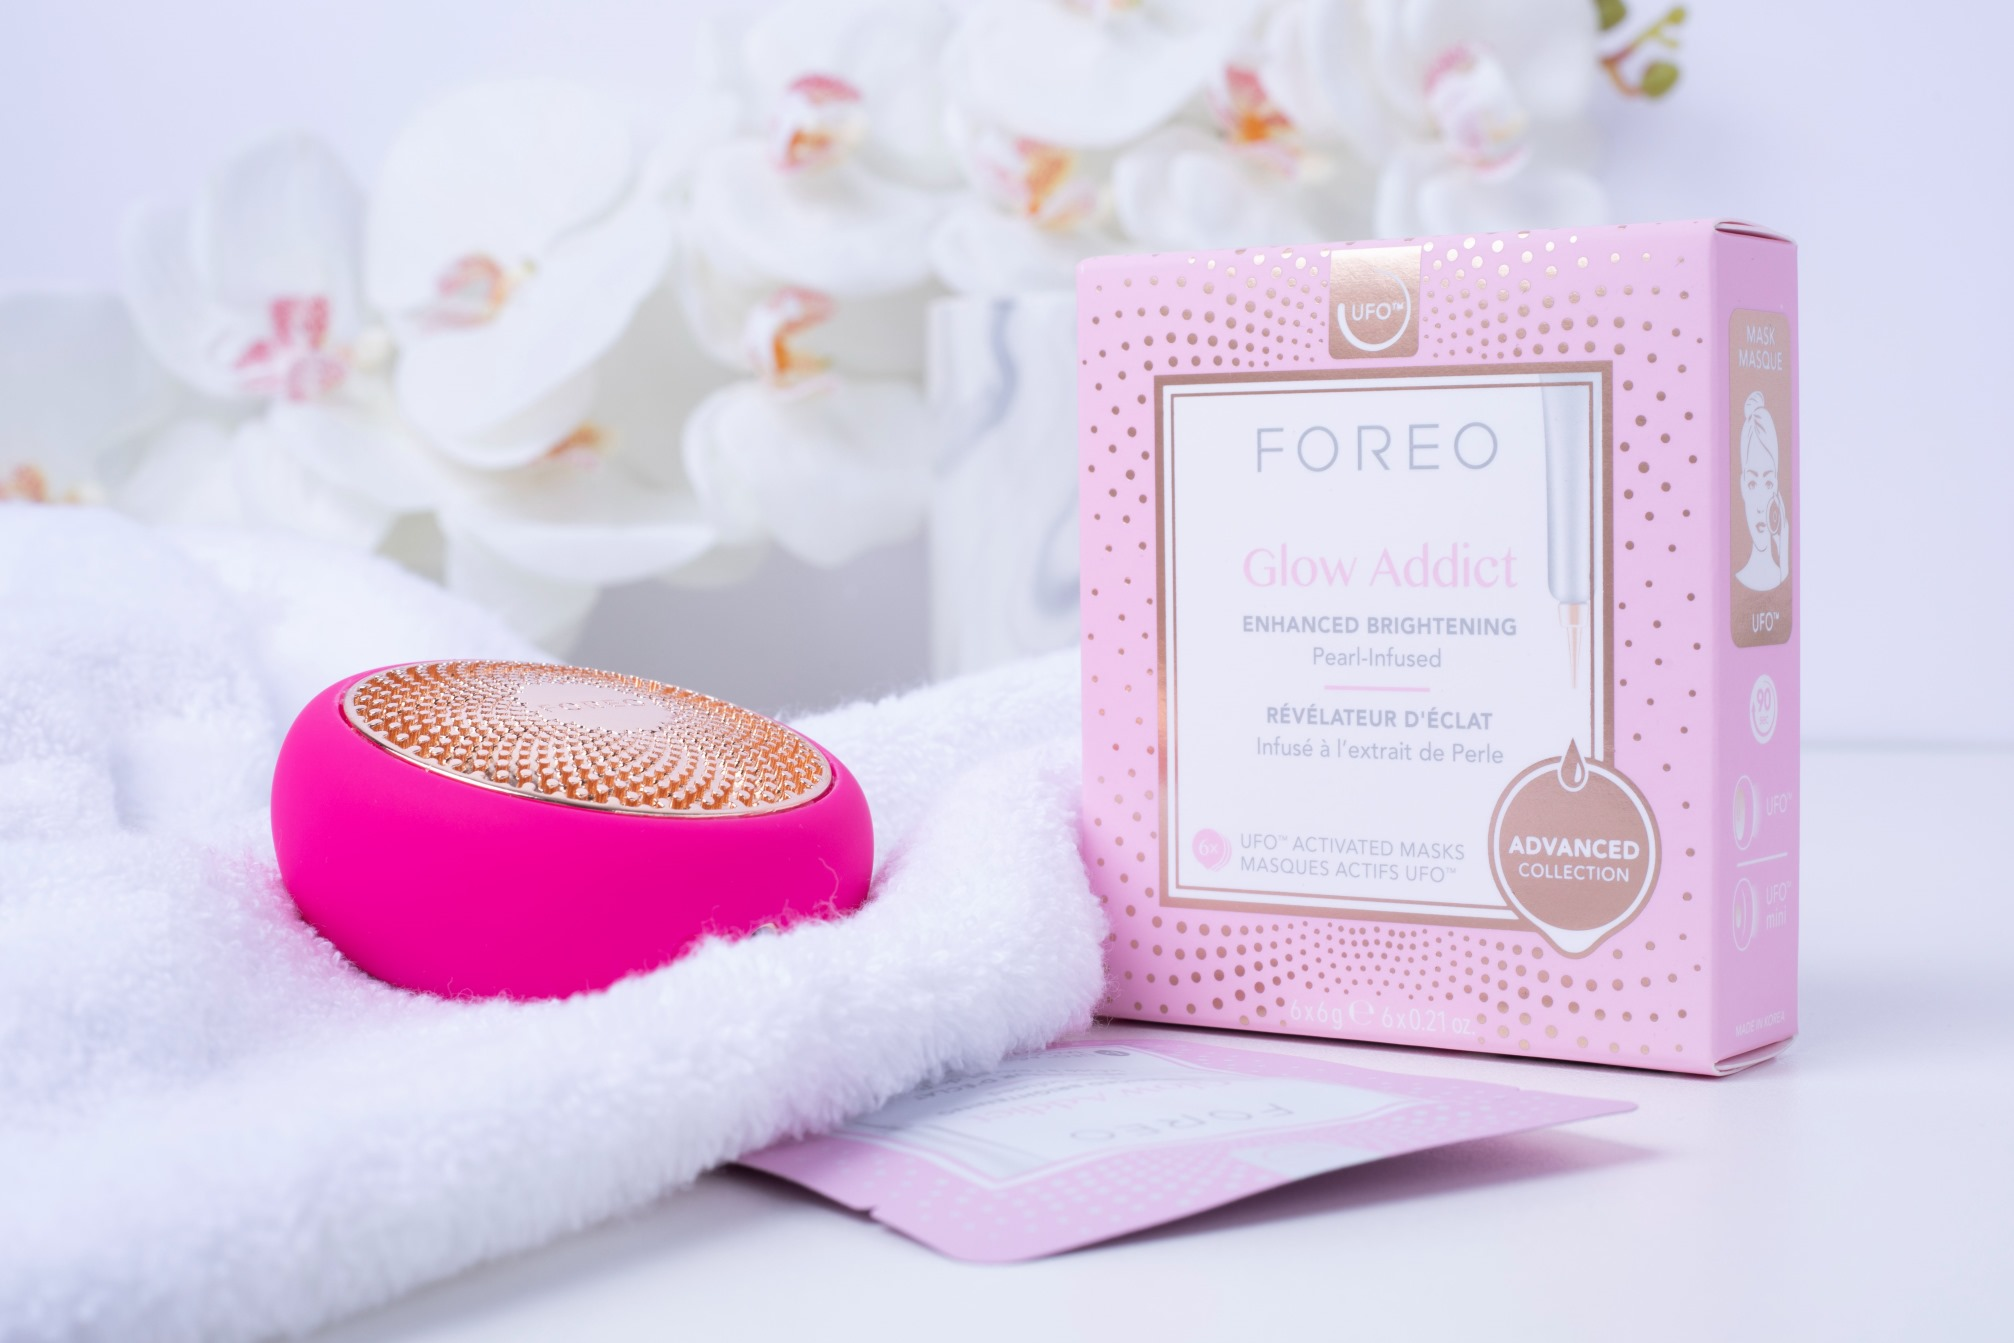 FOREO: after summer skincare routine